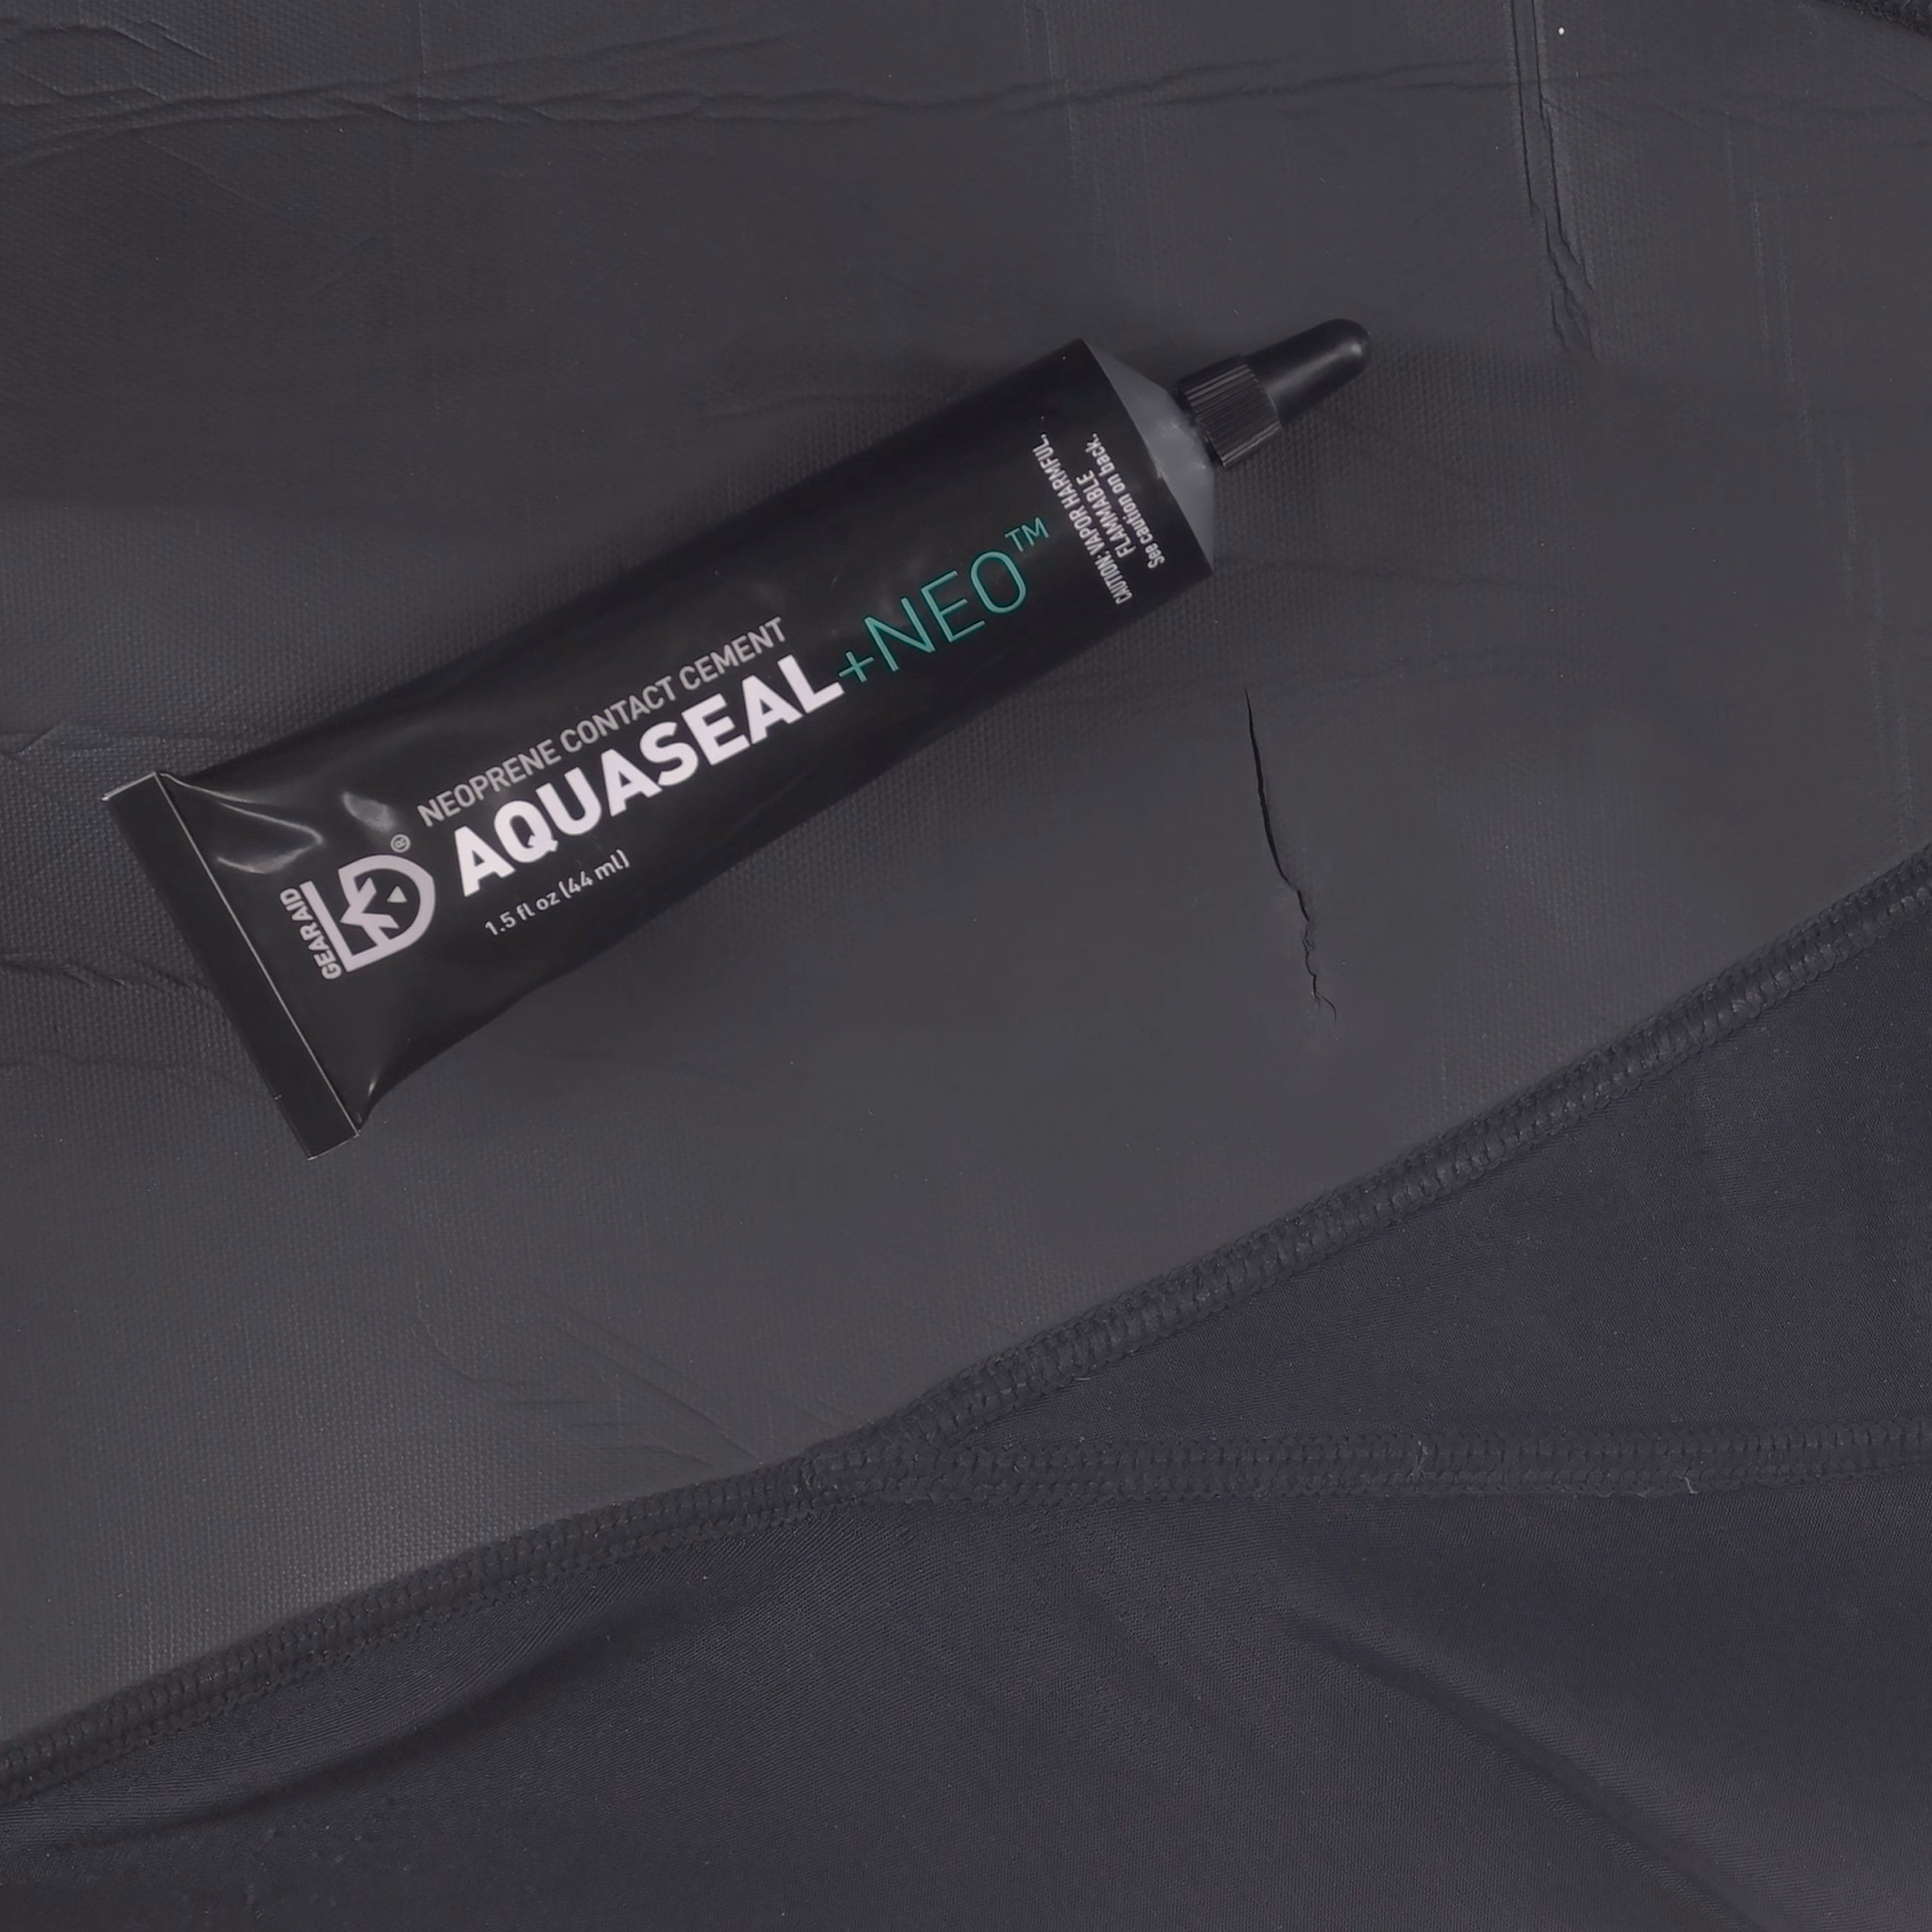 Aquaseal NEO Neoprene Contact Cement | GEAR AID